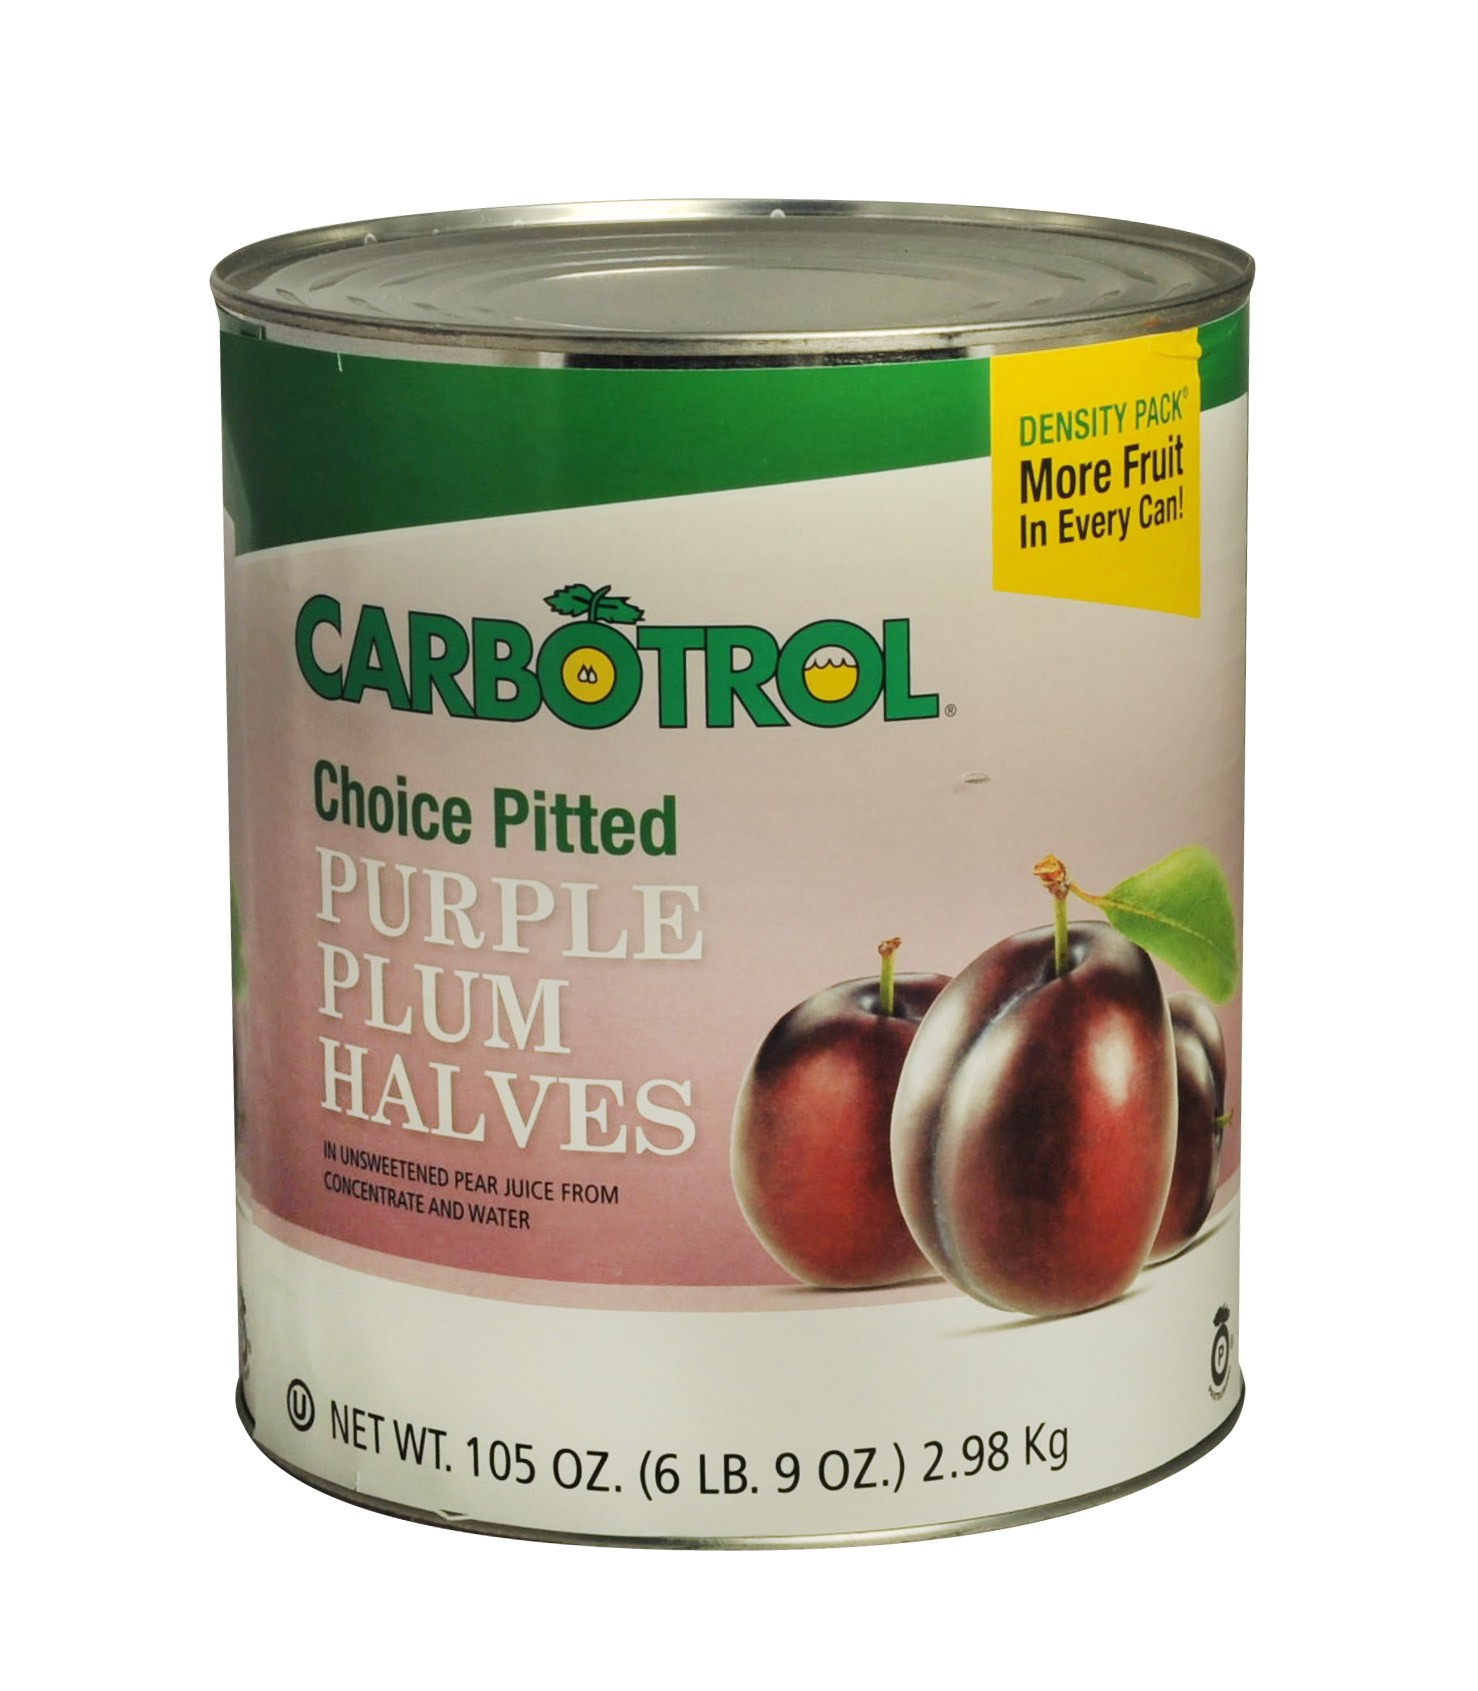 Carbotrol #10 Juice Packed Canned Fruit, Plum Halves (1 - 105oz Can)